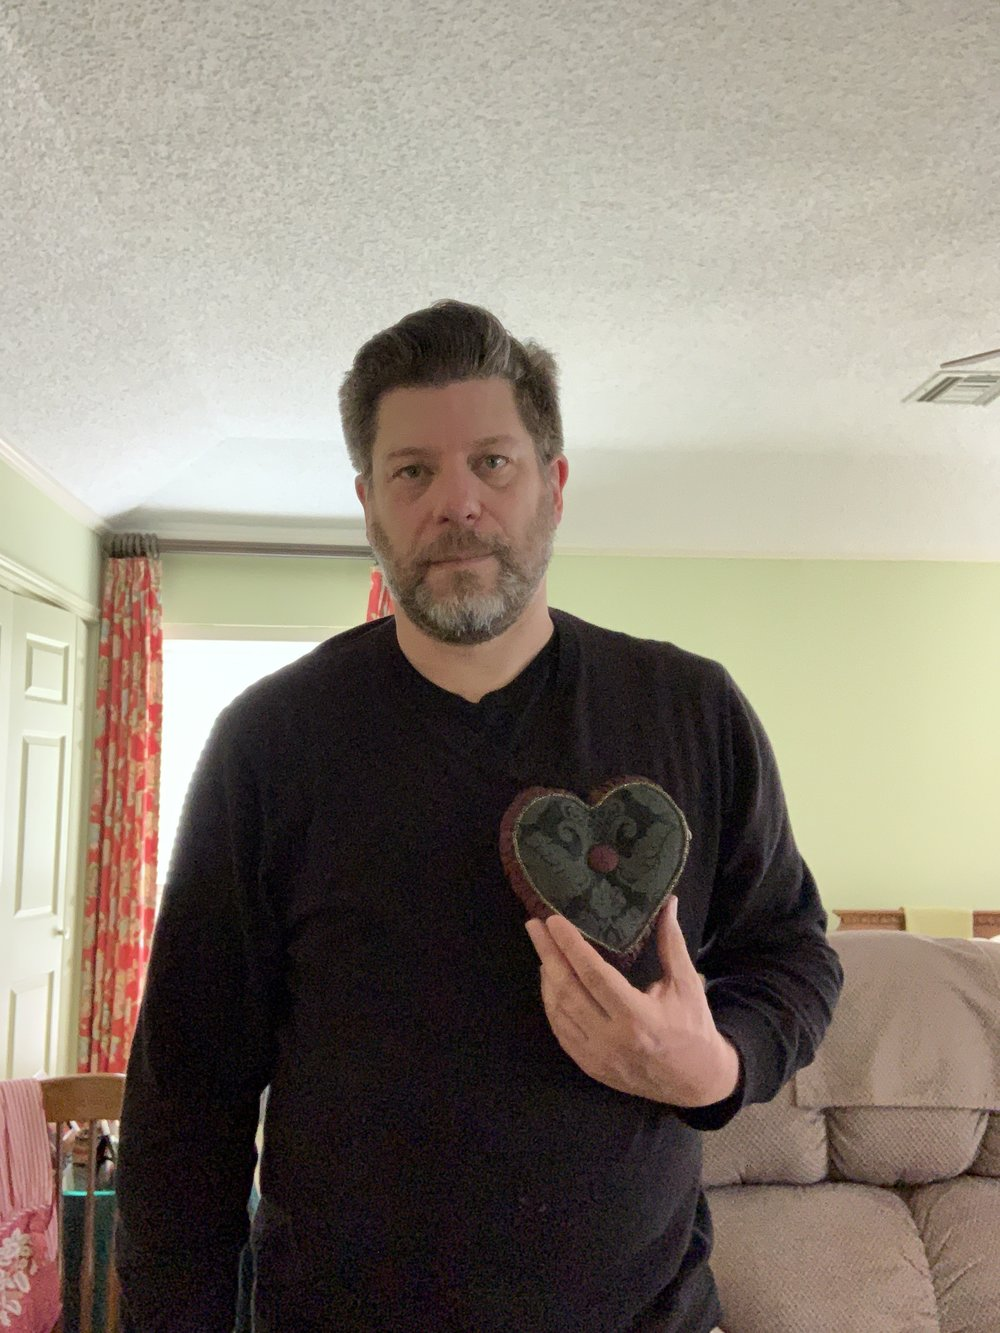 I gave this little heart-shaped cushion to Mother as a Christmas gift in the 1990s.